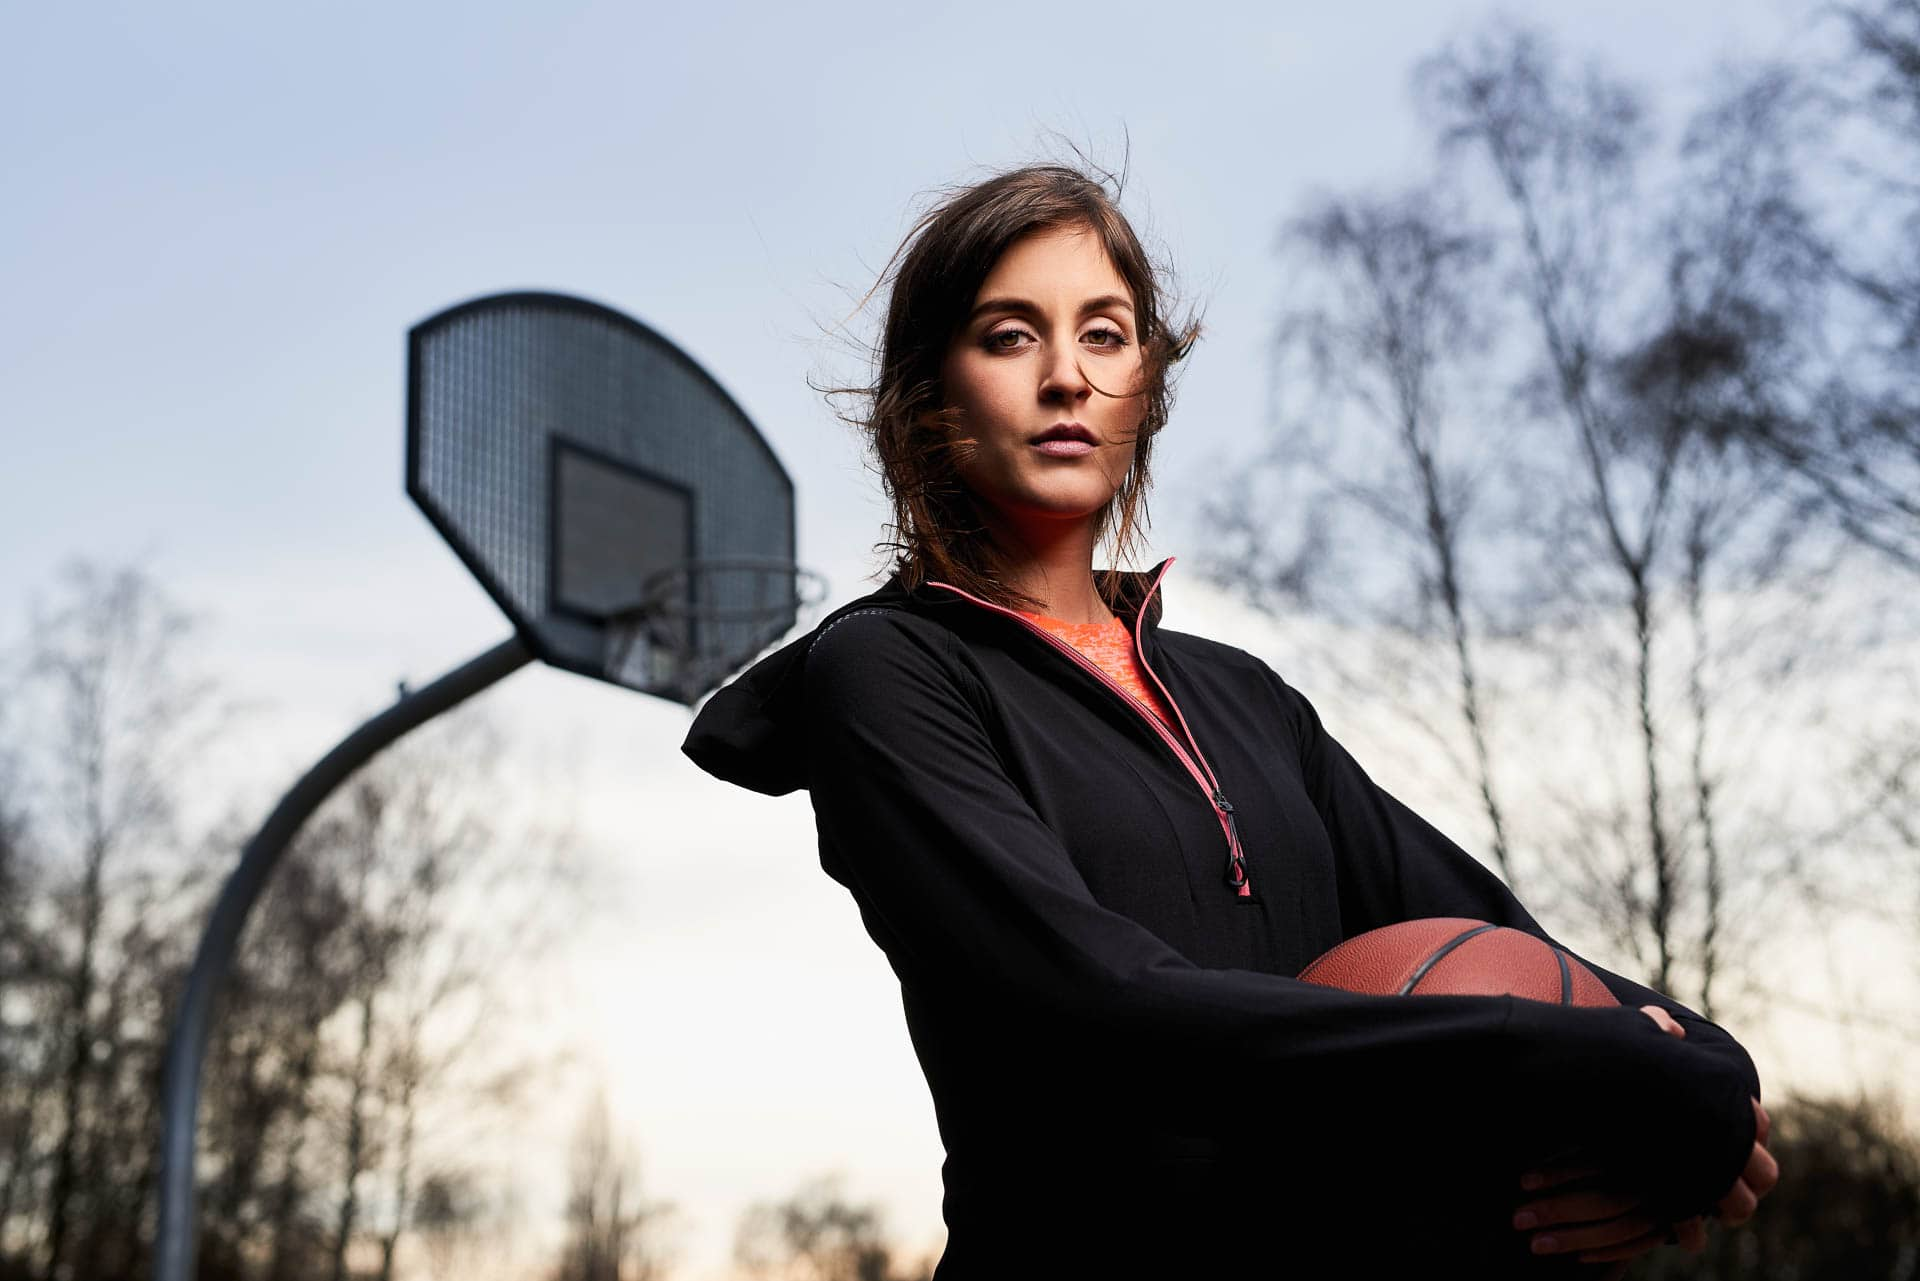 Sport Fitness Basketball Foto mit Model